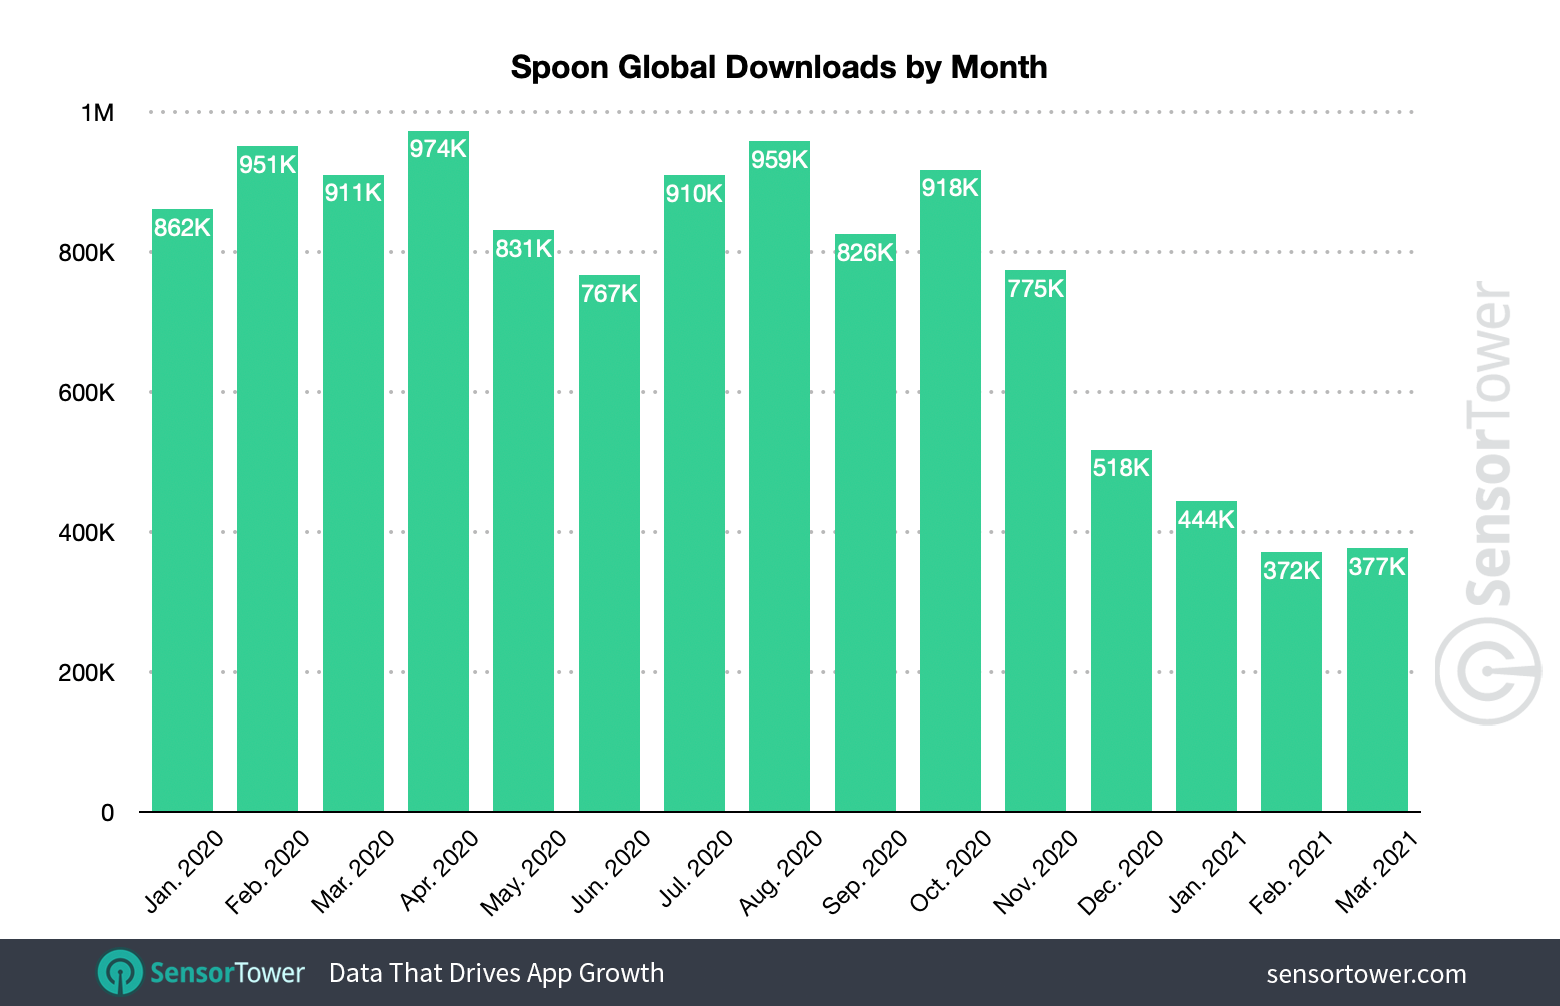 Spoon saw its best-ever month of installs in April 2020.